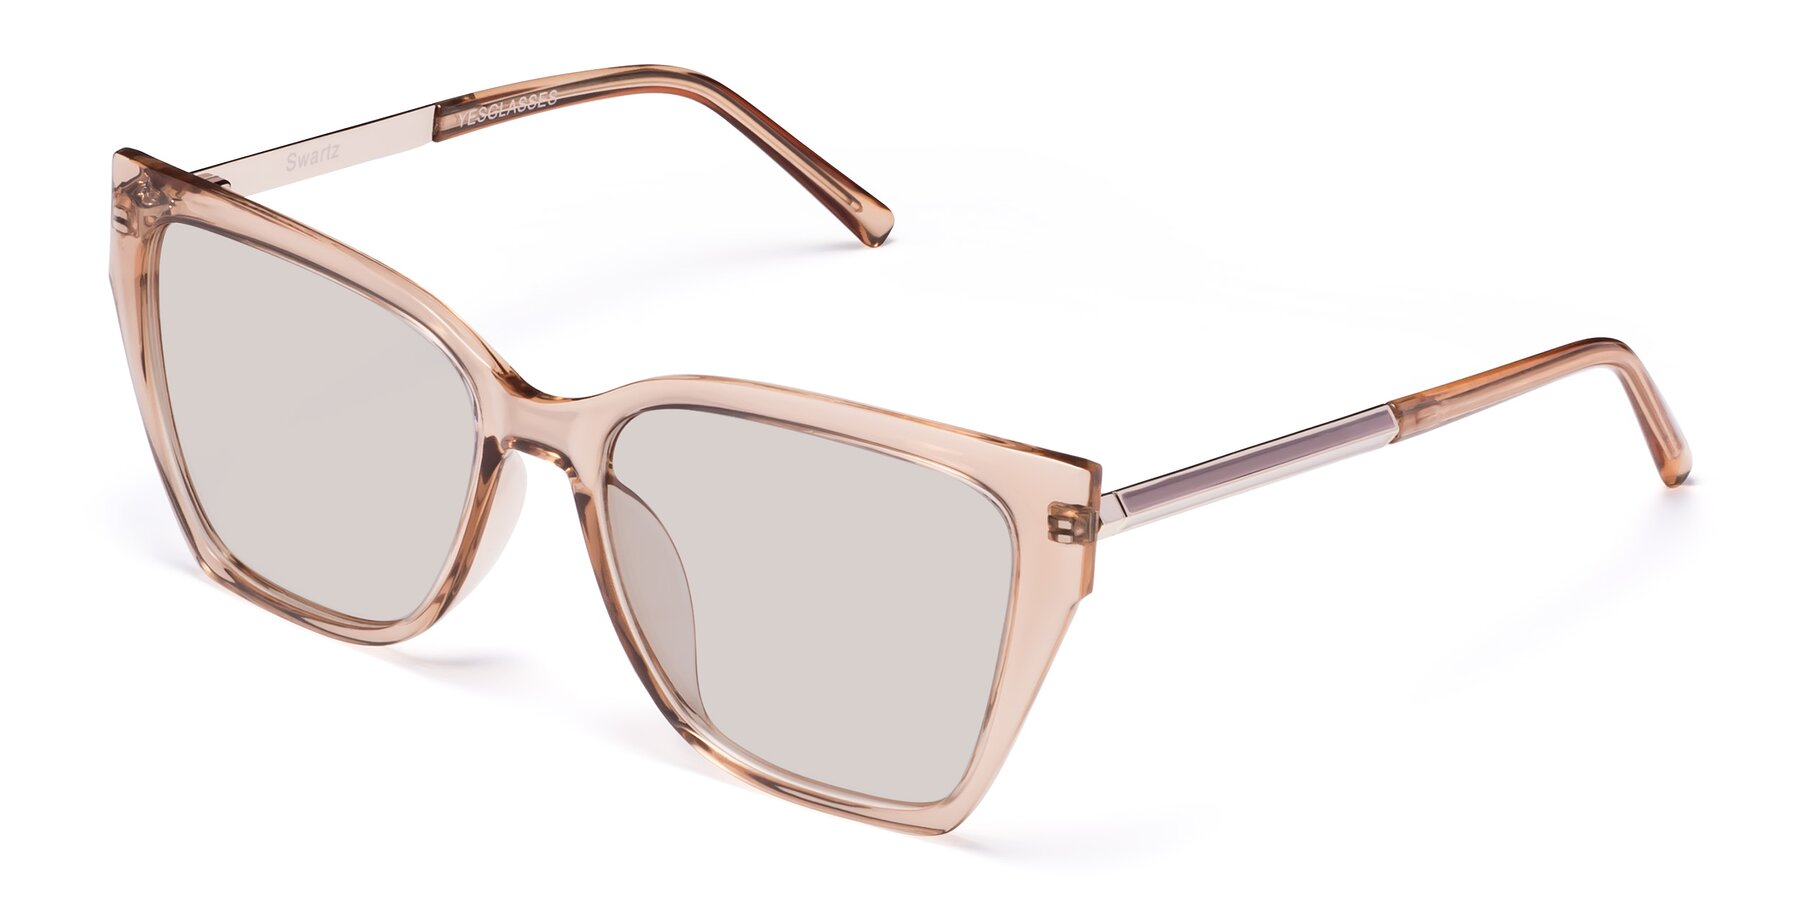 Angle of Swartz in Amber with Light Brown Tinted Lenses